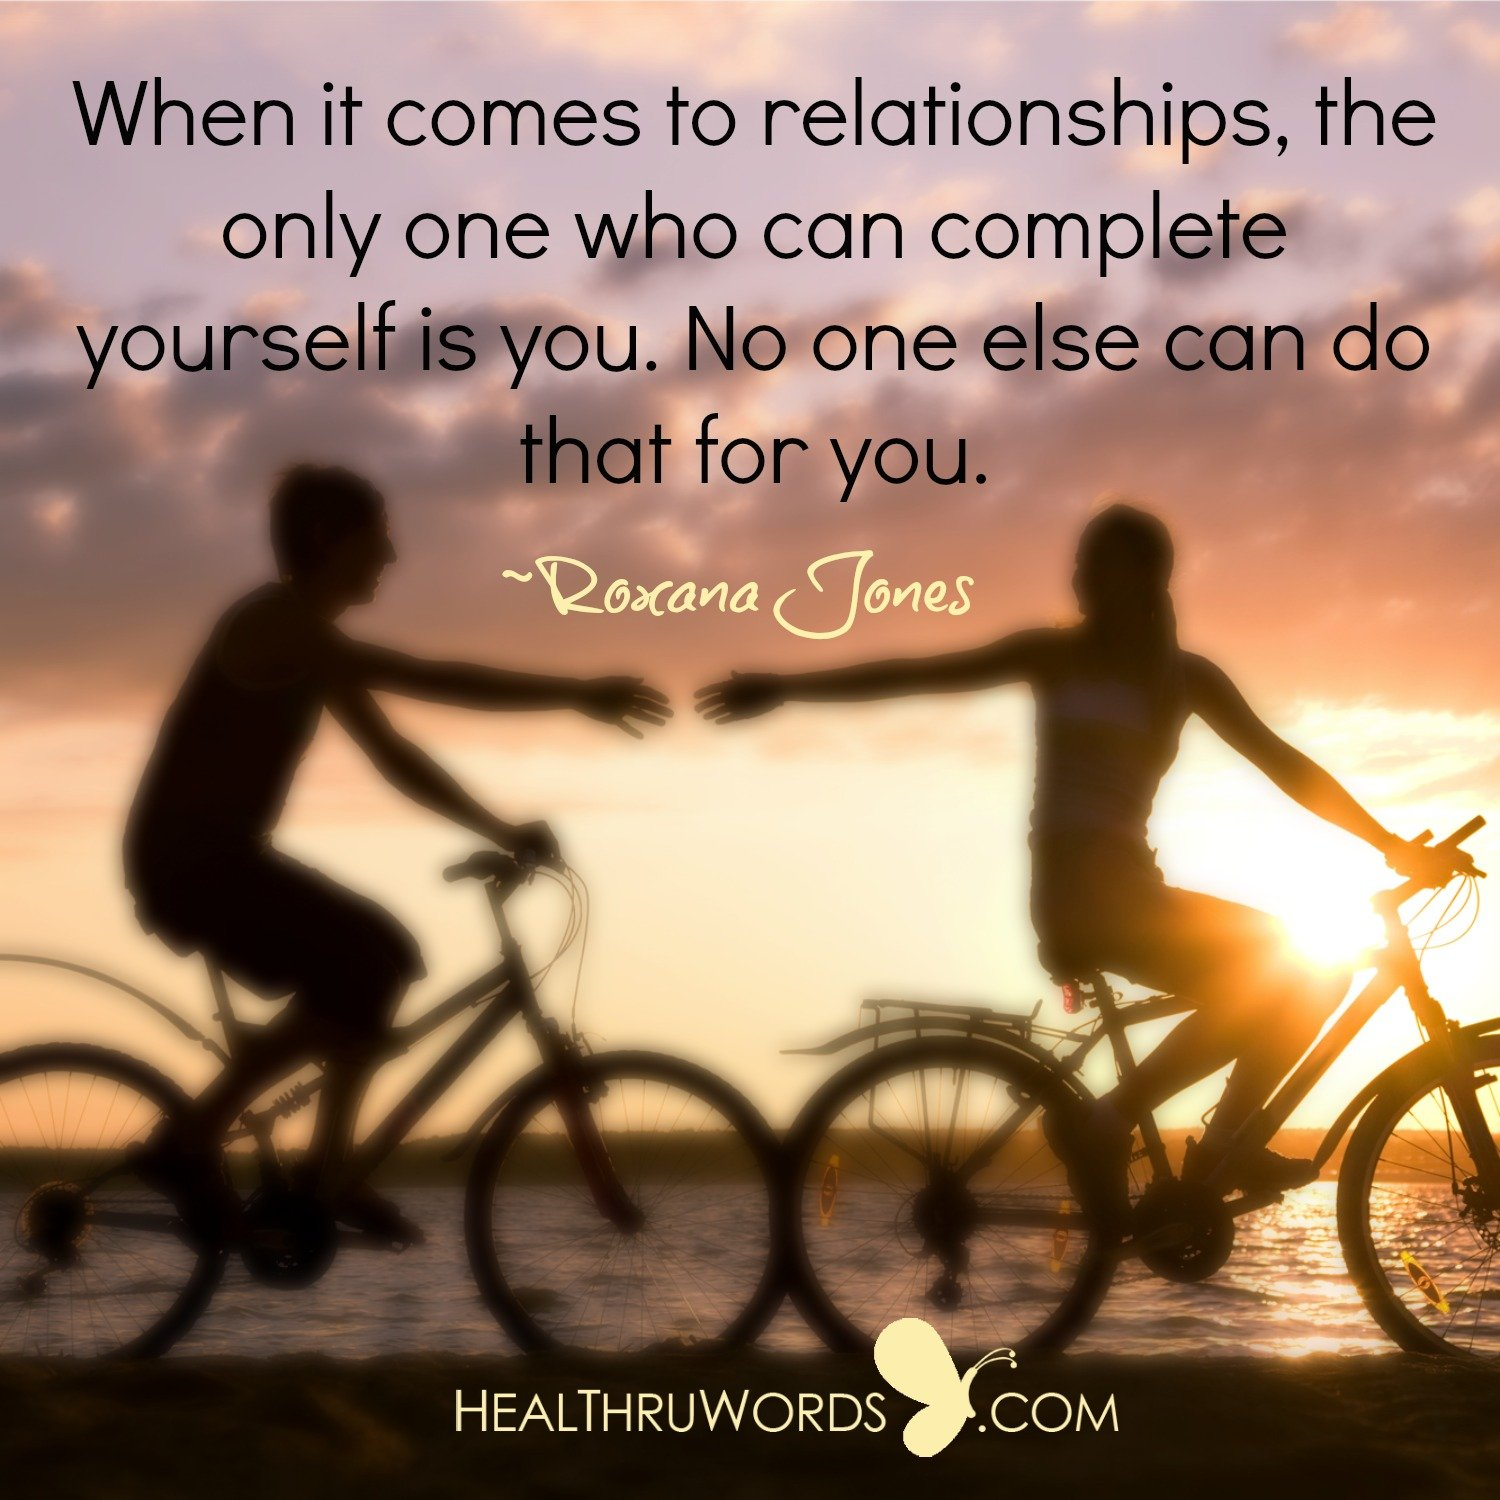 Inspirational Image: Completing Yourself